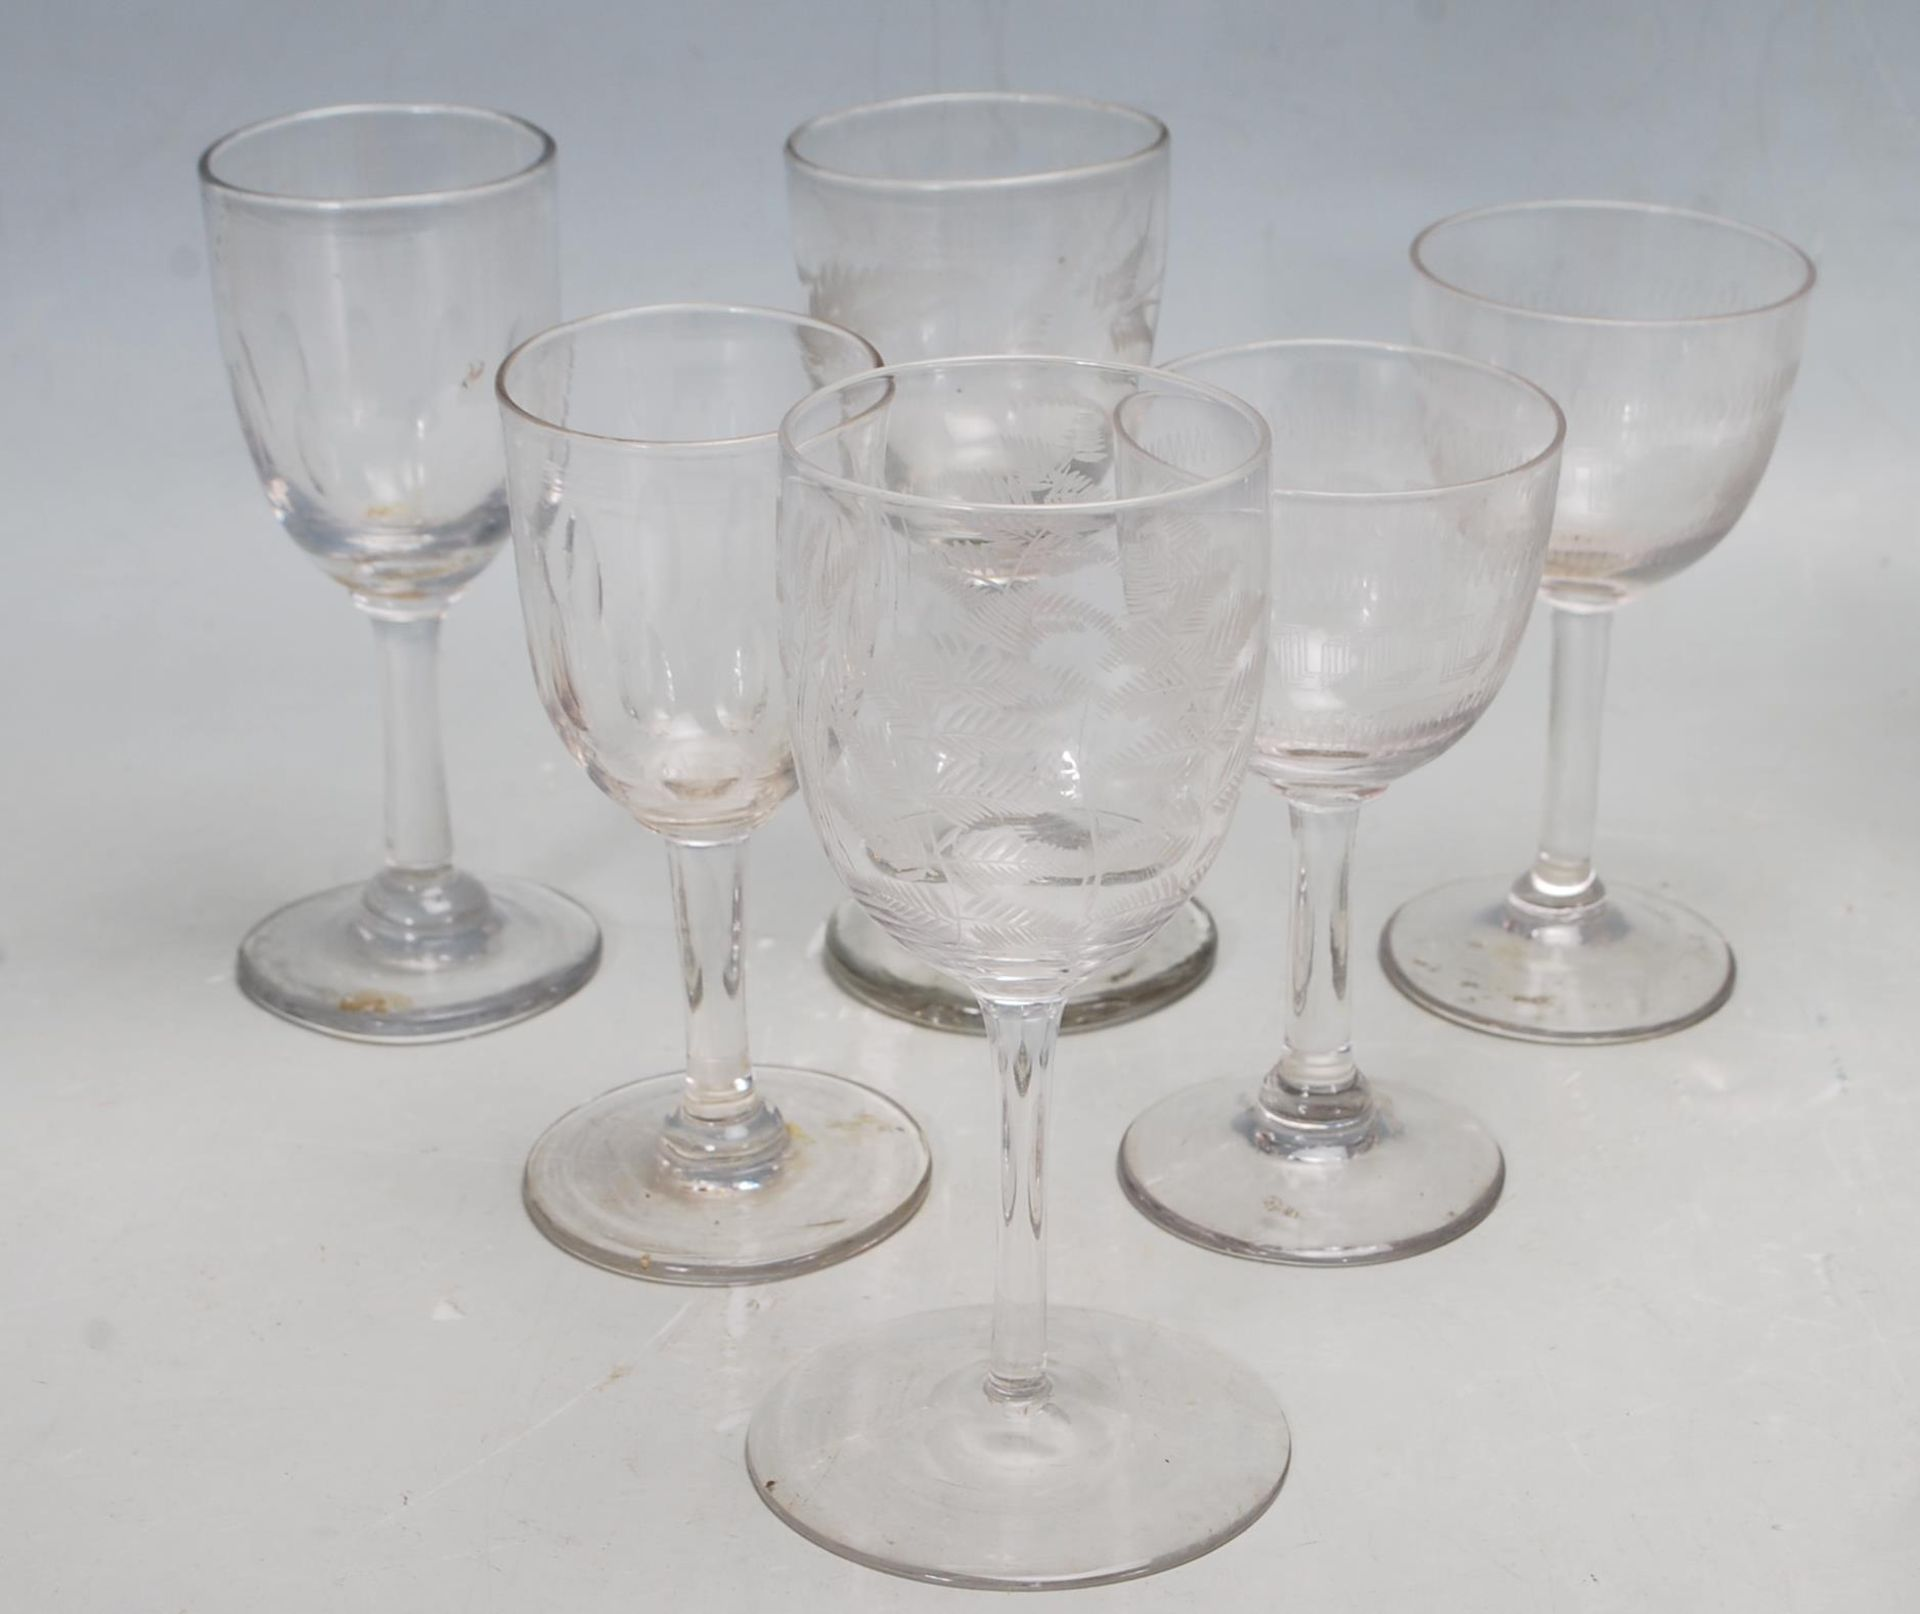 FOUR 18TH CENTURY GEORGIAN DECANTER ALONG WITH A COLLECTION OF VICTORIAN GLASSES - Image 5 of 7